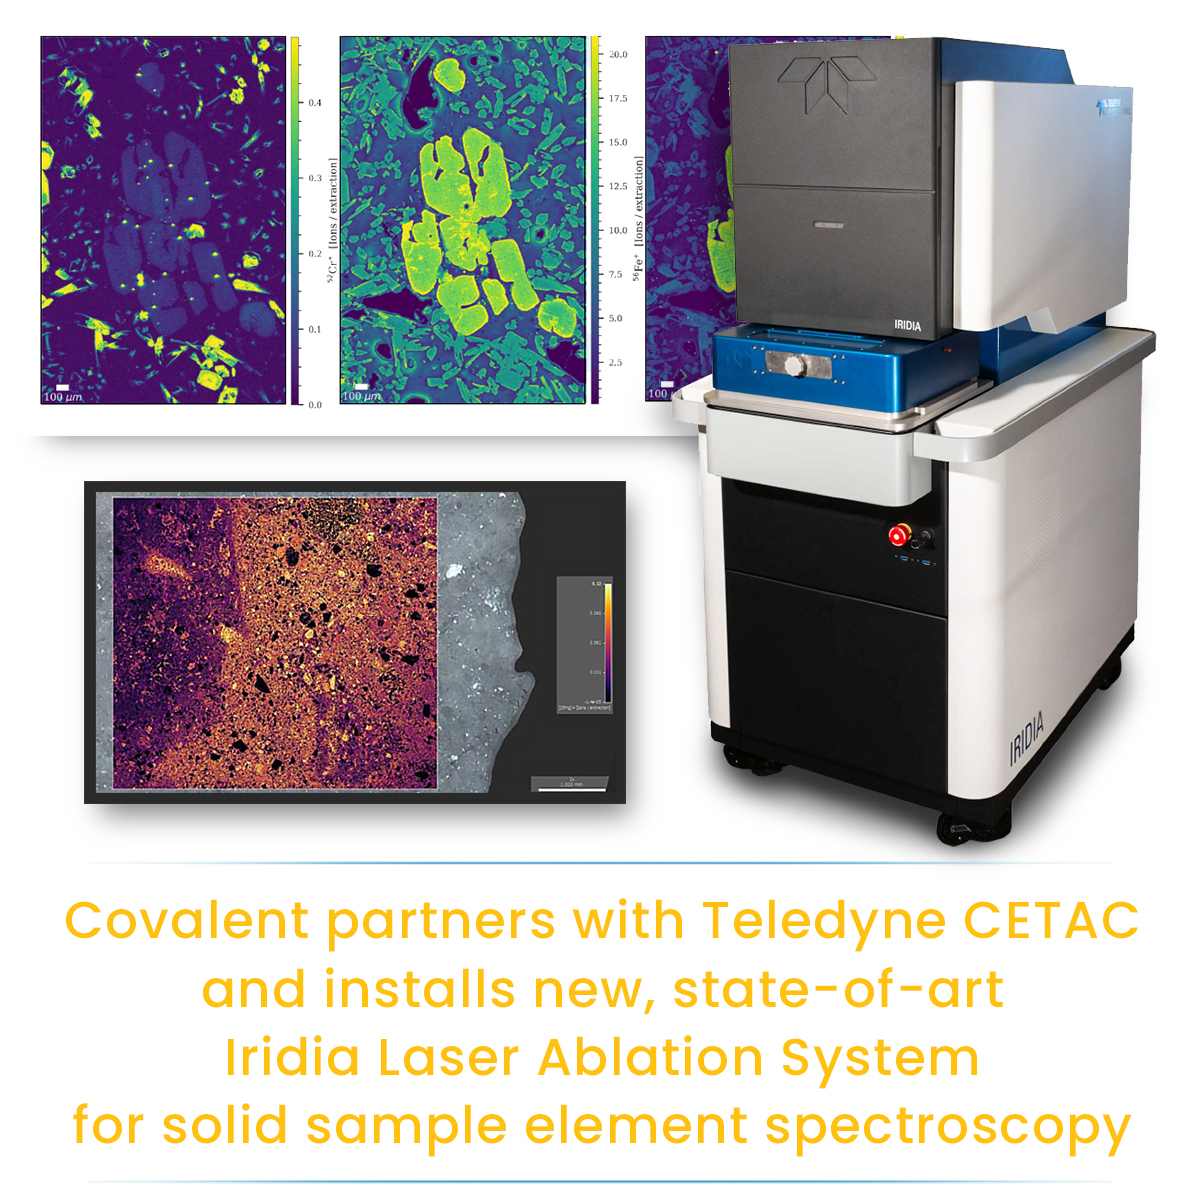 Covalent Metrology and Teledyne CETAC Technologies Announce New Partnership to Advance Research in Analytical Chemistry Applications and Instrumentation